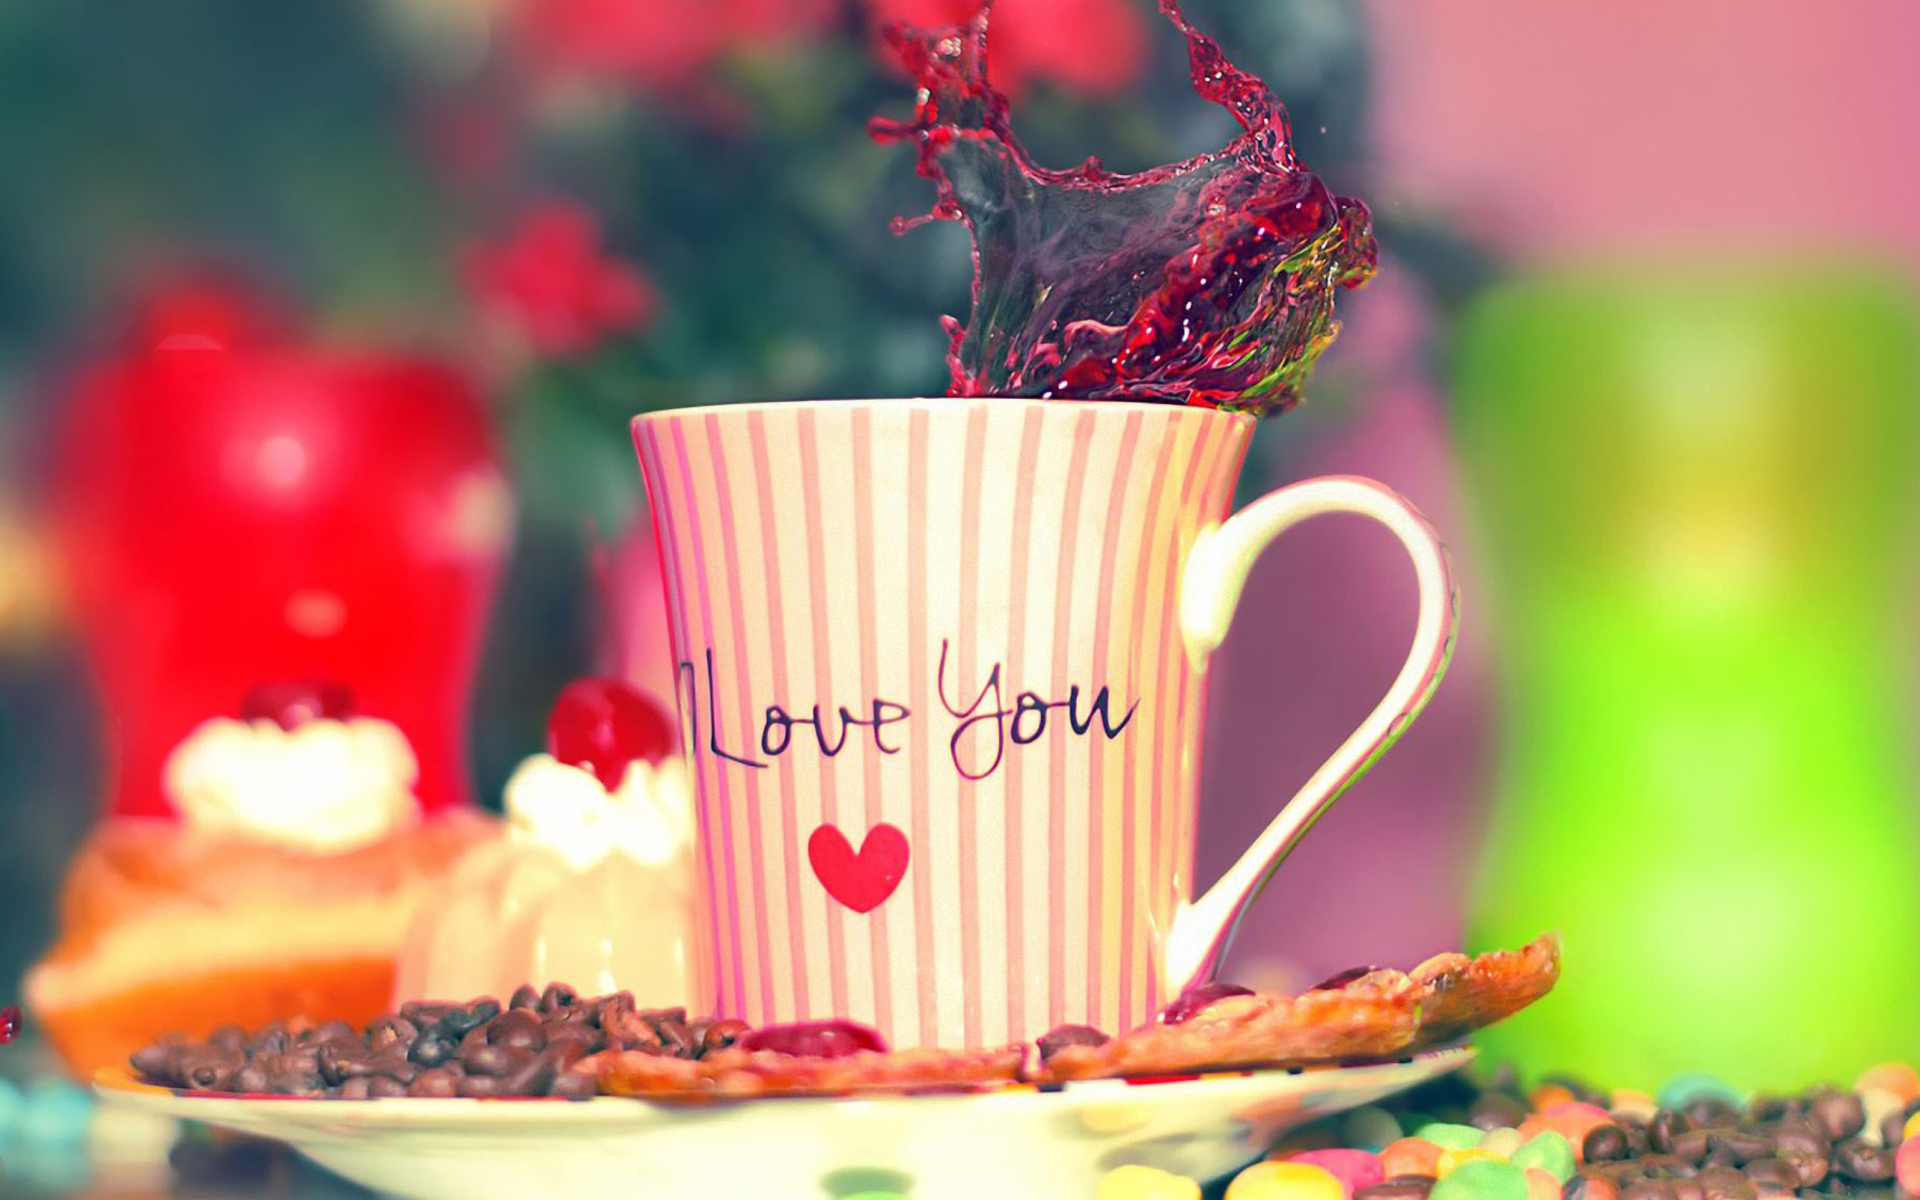 Good Morning I Love You Wallpaper Hd : Good Morning! I Love You Wallpaper for Widescreen Desktop Pc 1920x1080 Full HD